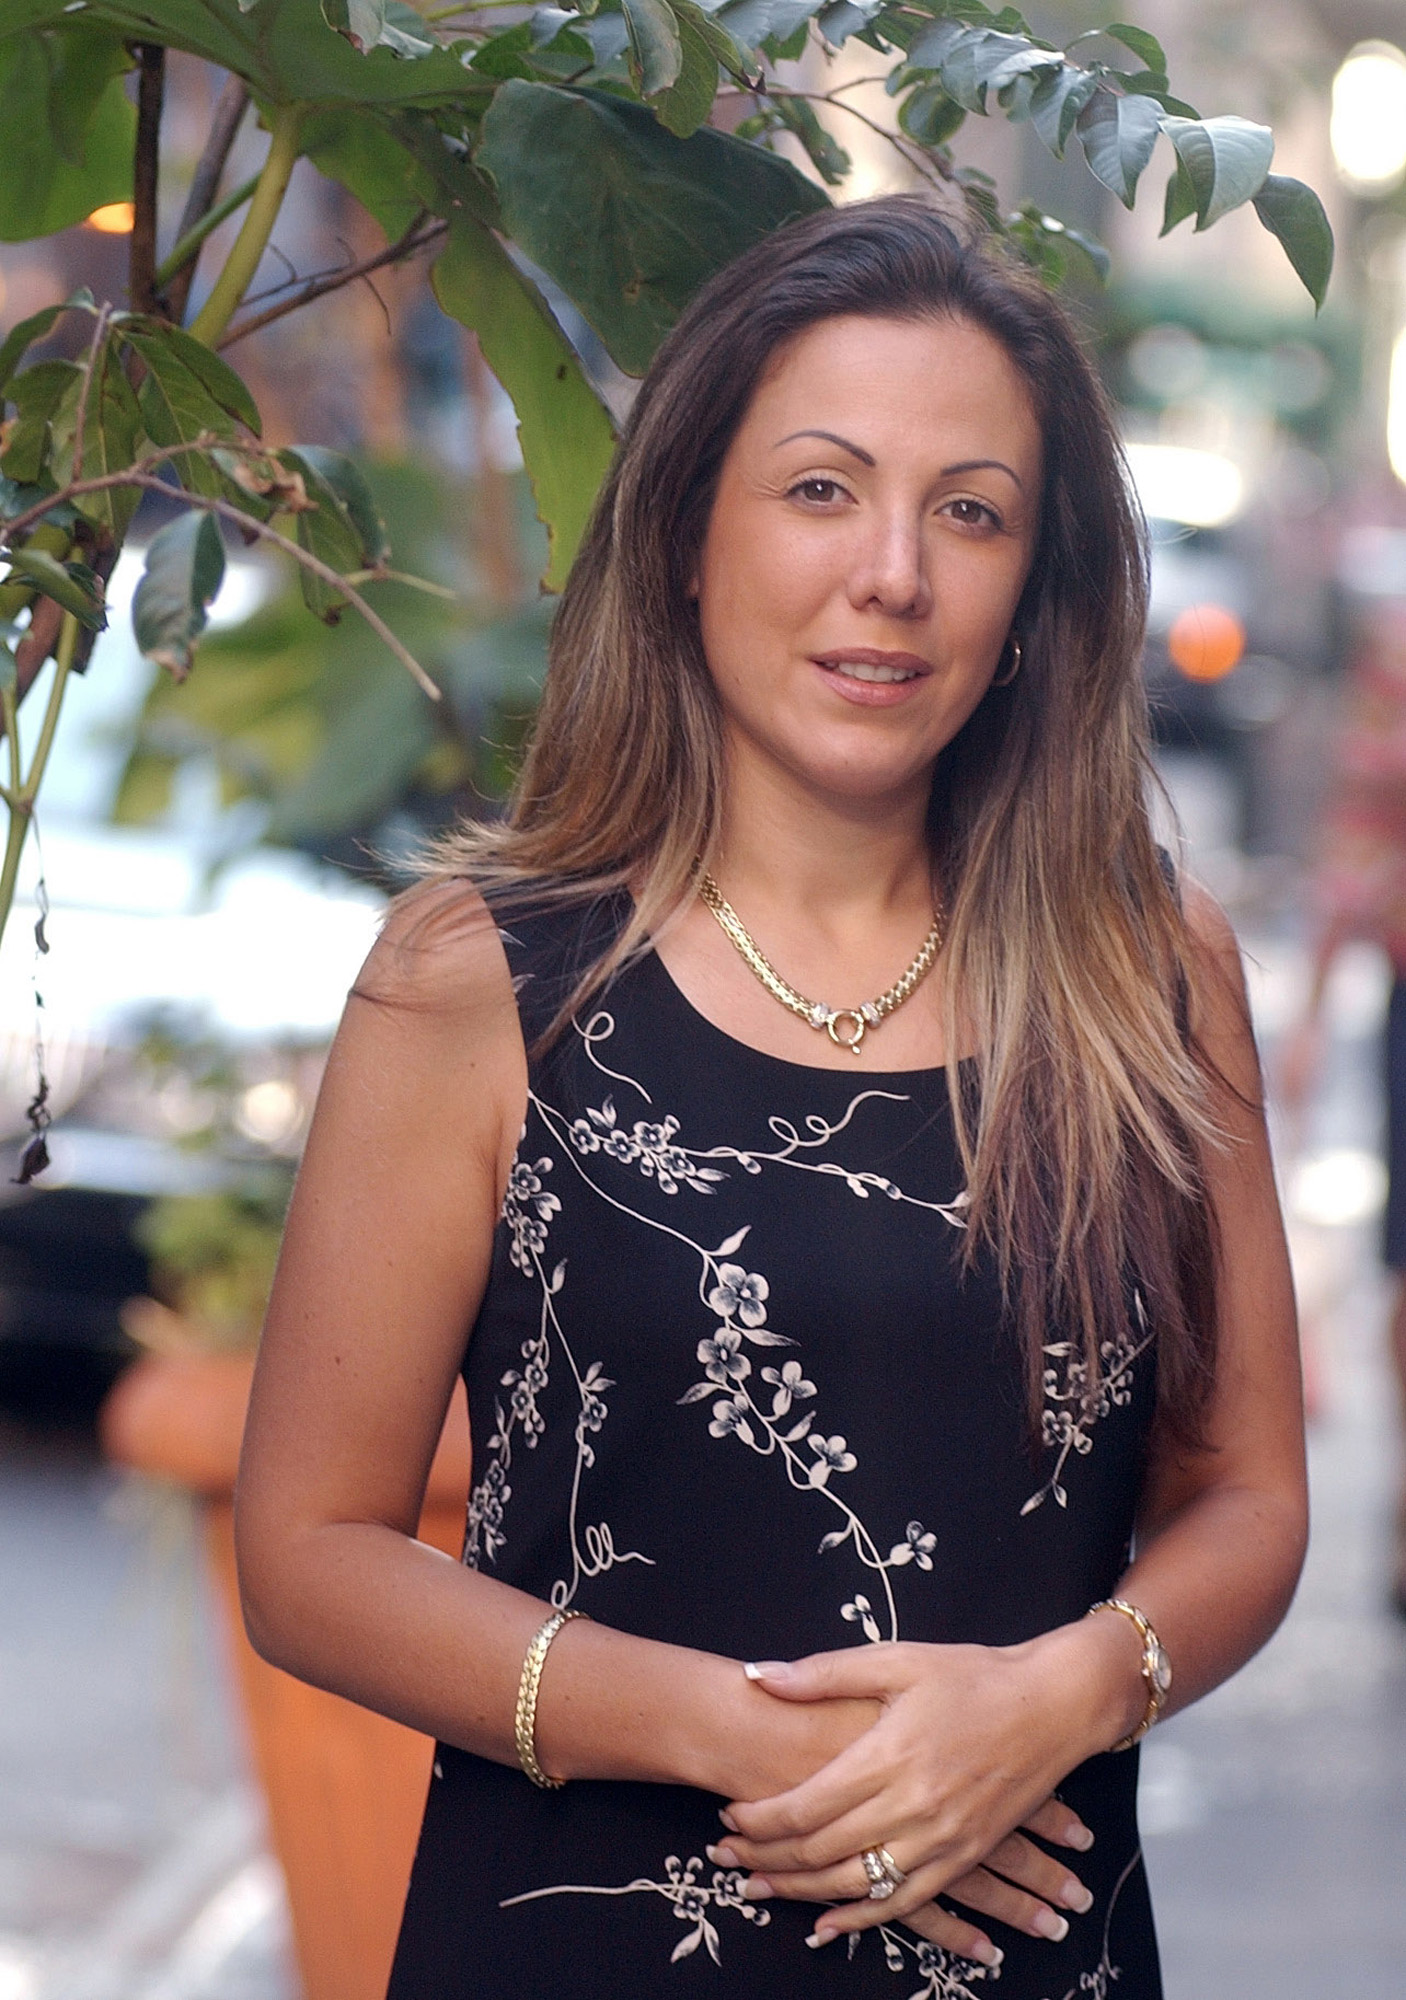 Amy Fisher Caught On Tape long island lolita gets a made-for-tv aria - times union